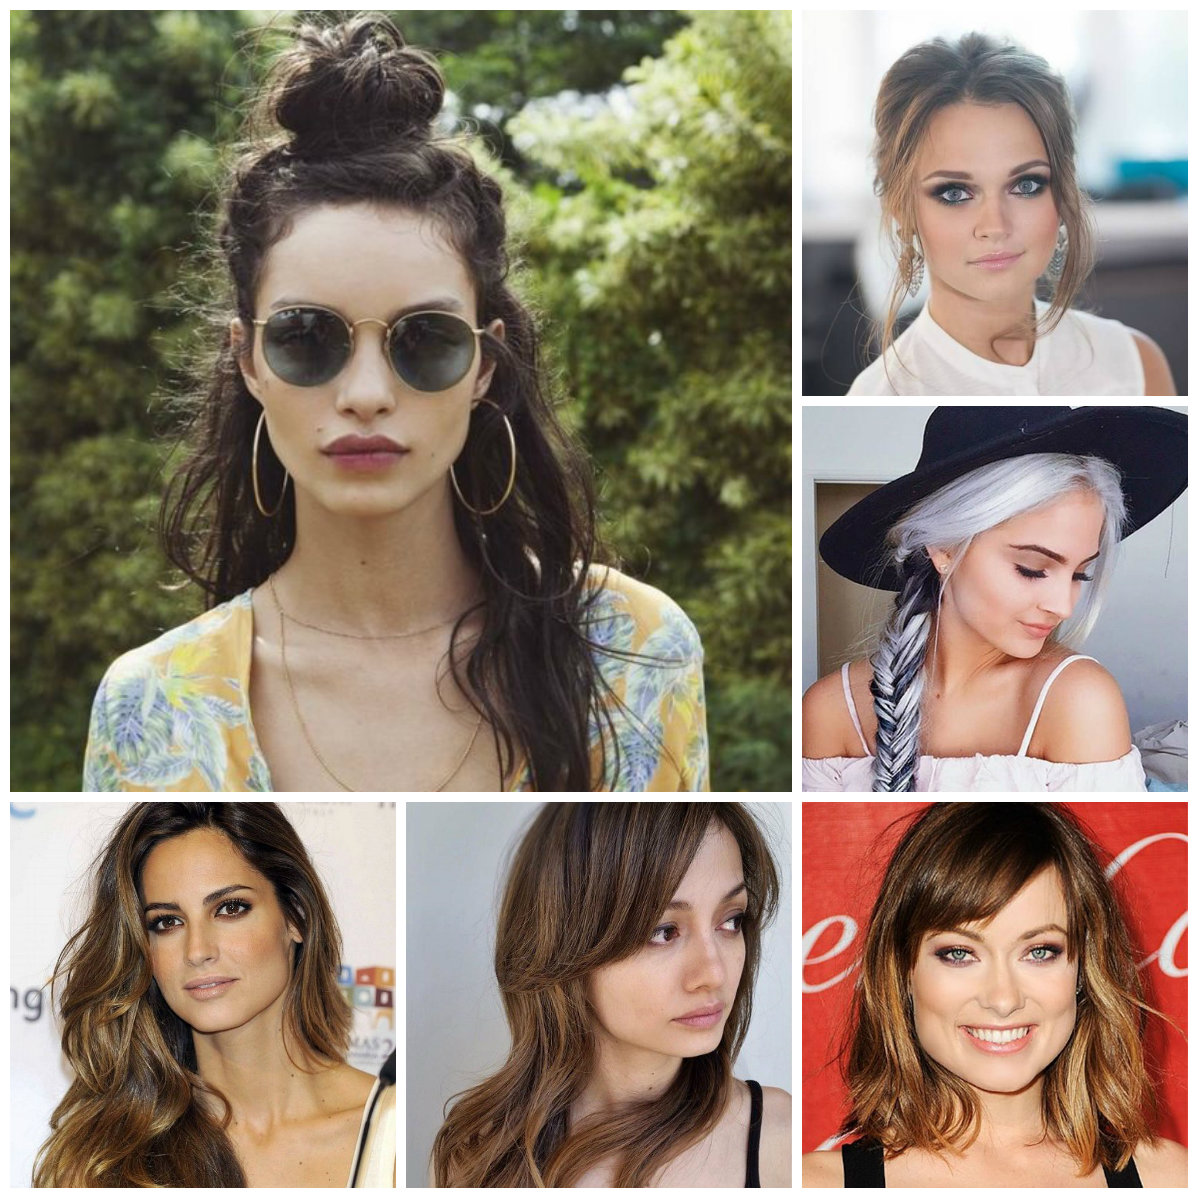 Hairstyles-Ideas-for-Square-Face-Shapes